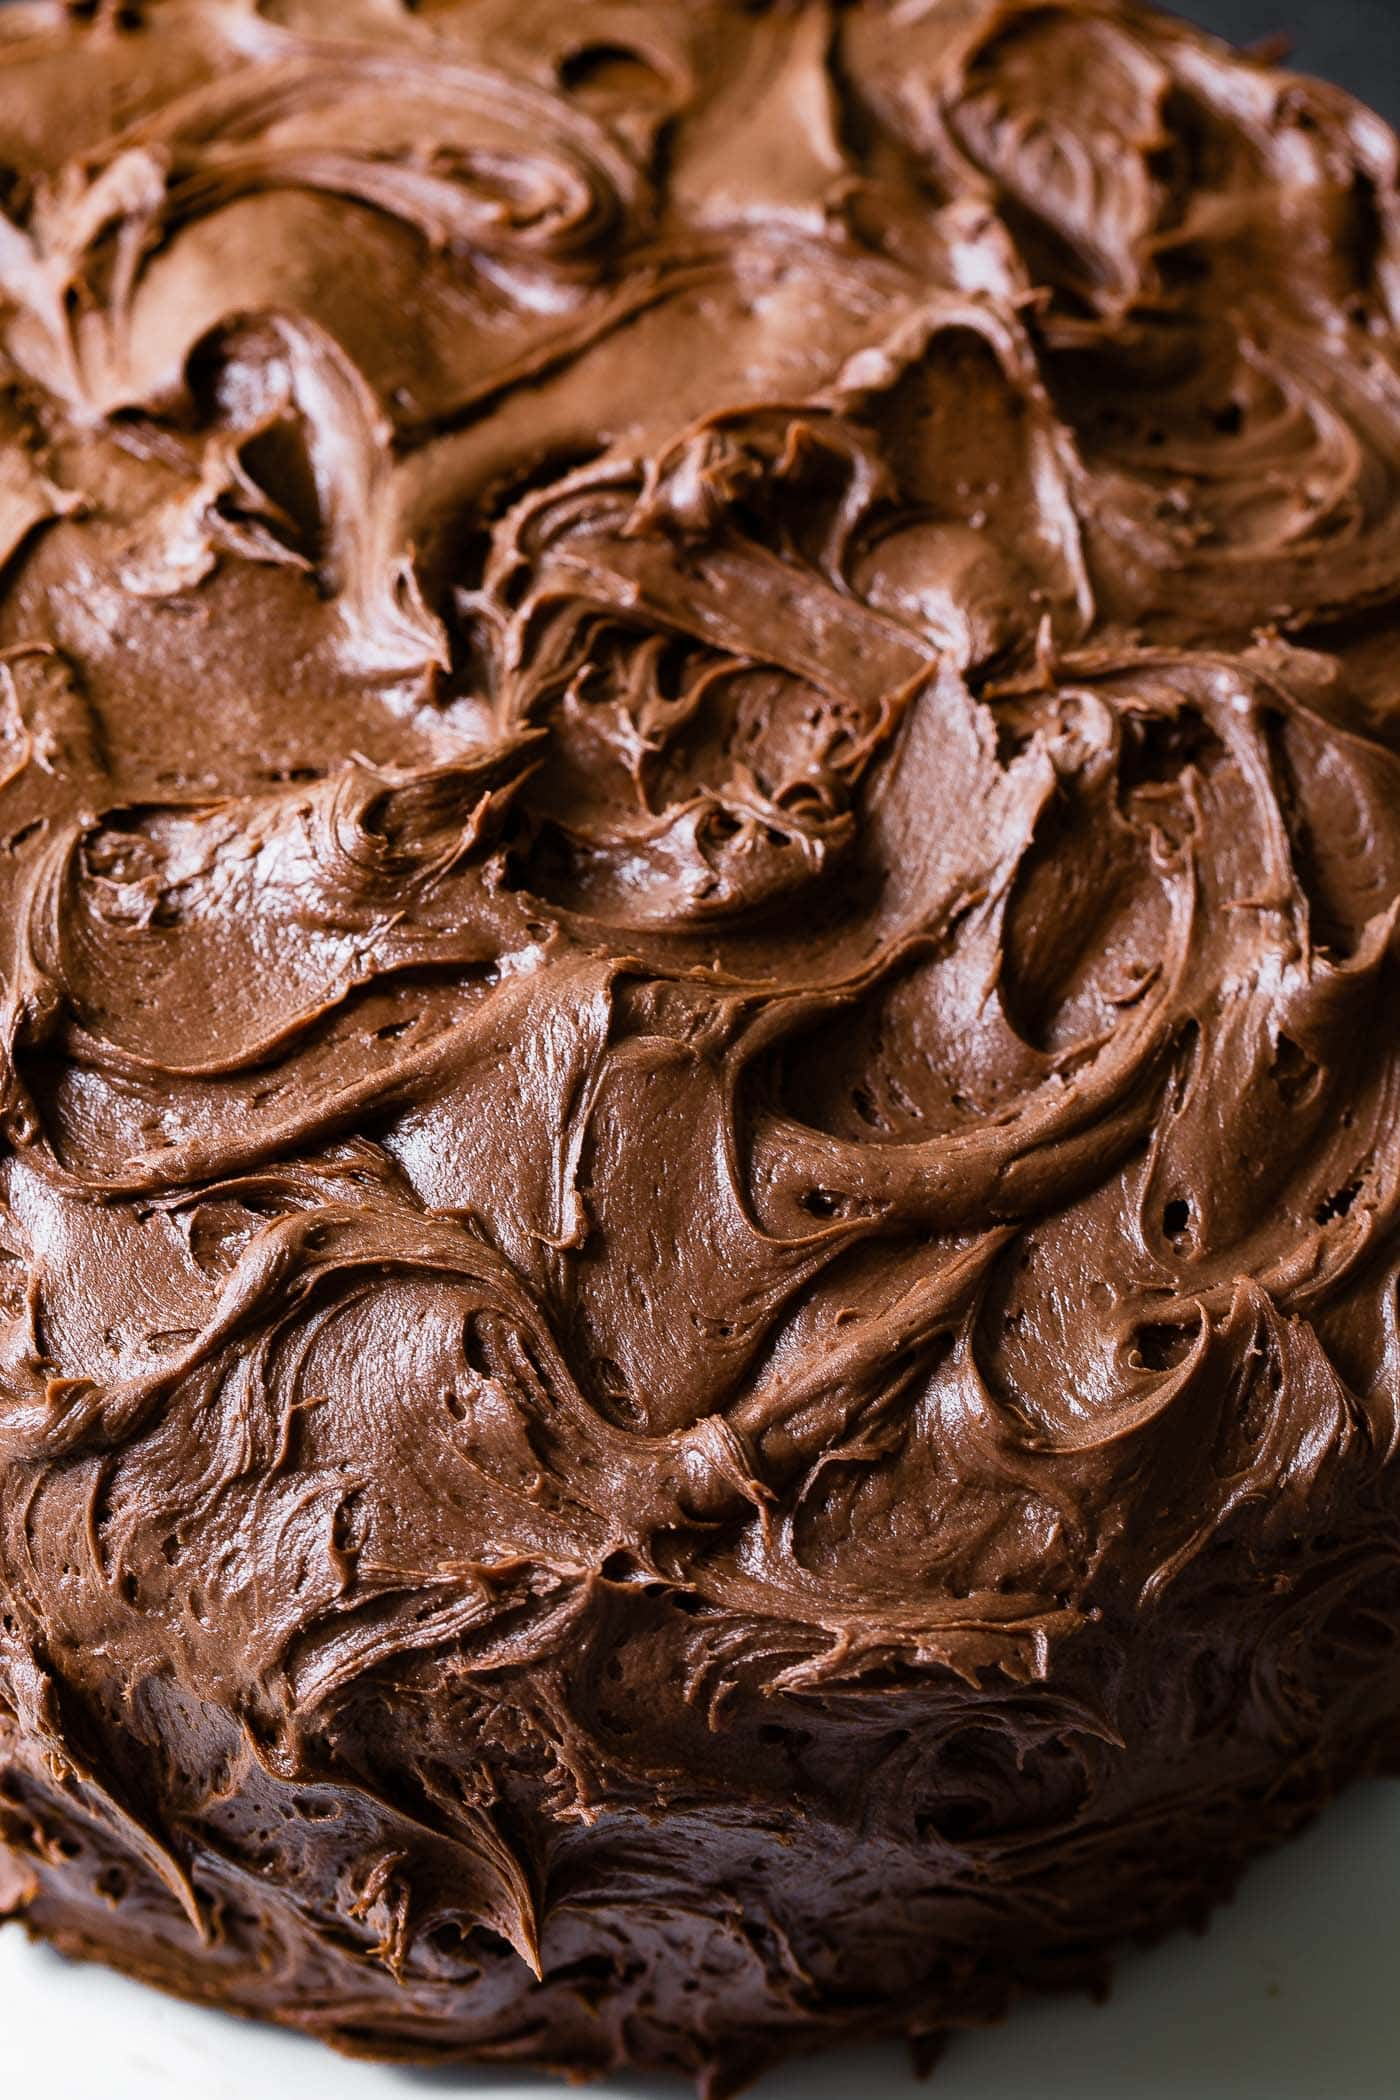 A close-up of the top of a moist chocolate cake that is frosted with beautiful chocolate frosting.